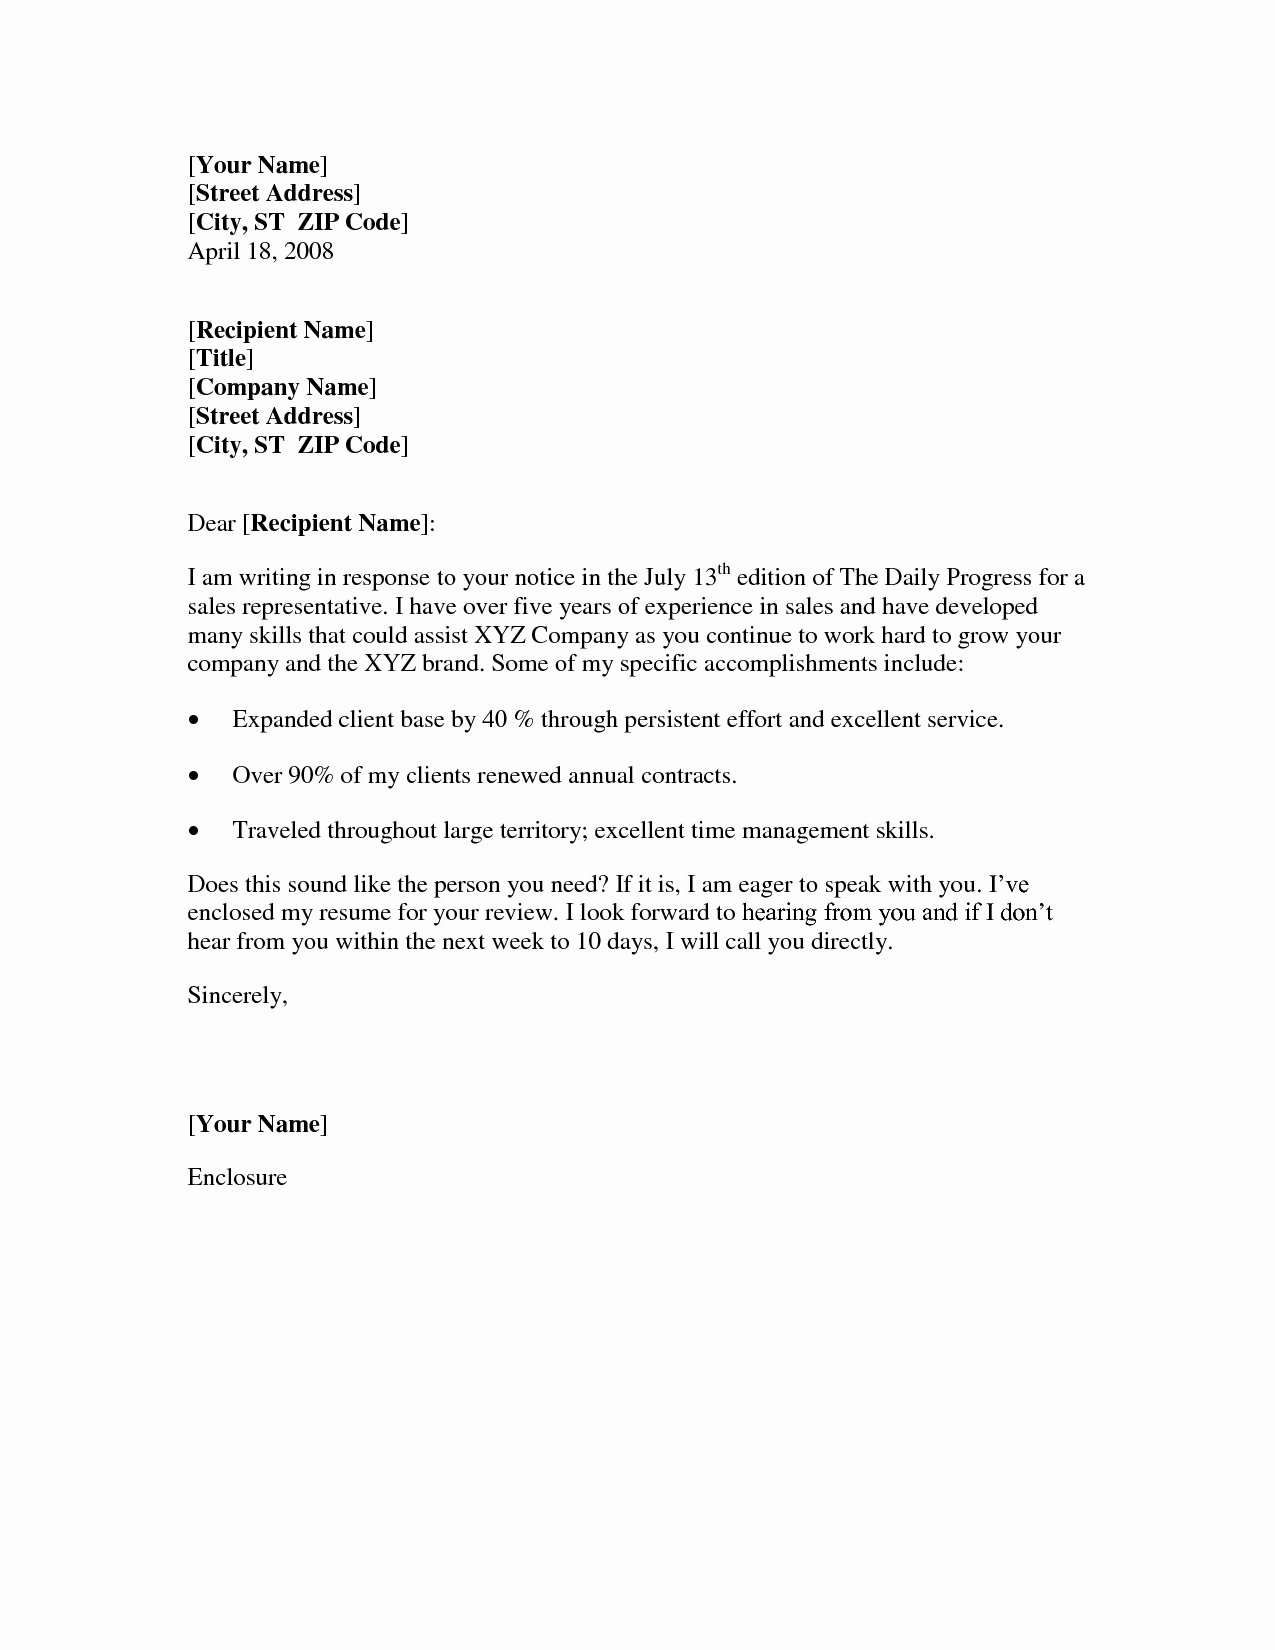 Sample Resume and Cover Letter Beautiful 10 Best Of Basic Cover Letter for Resume Sample